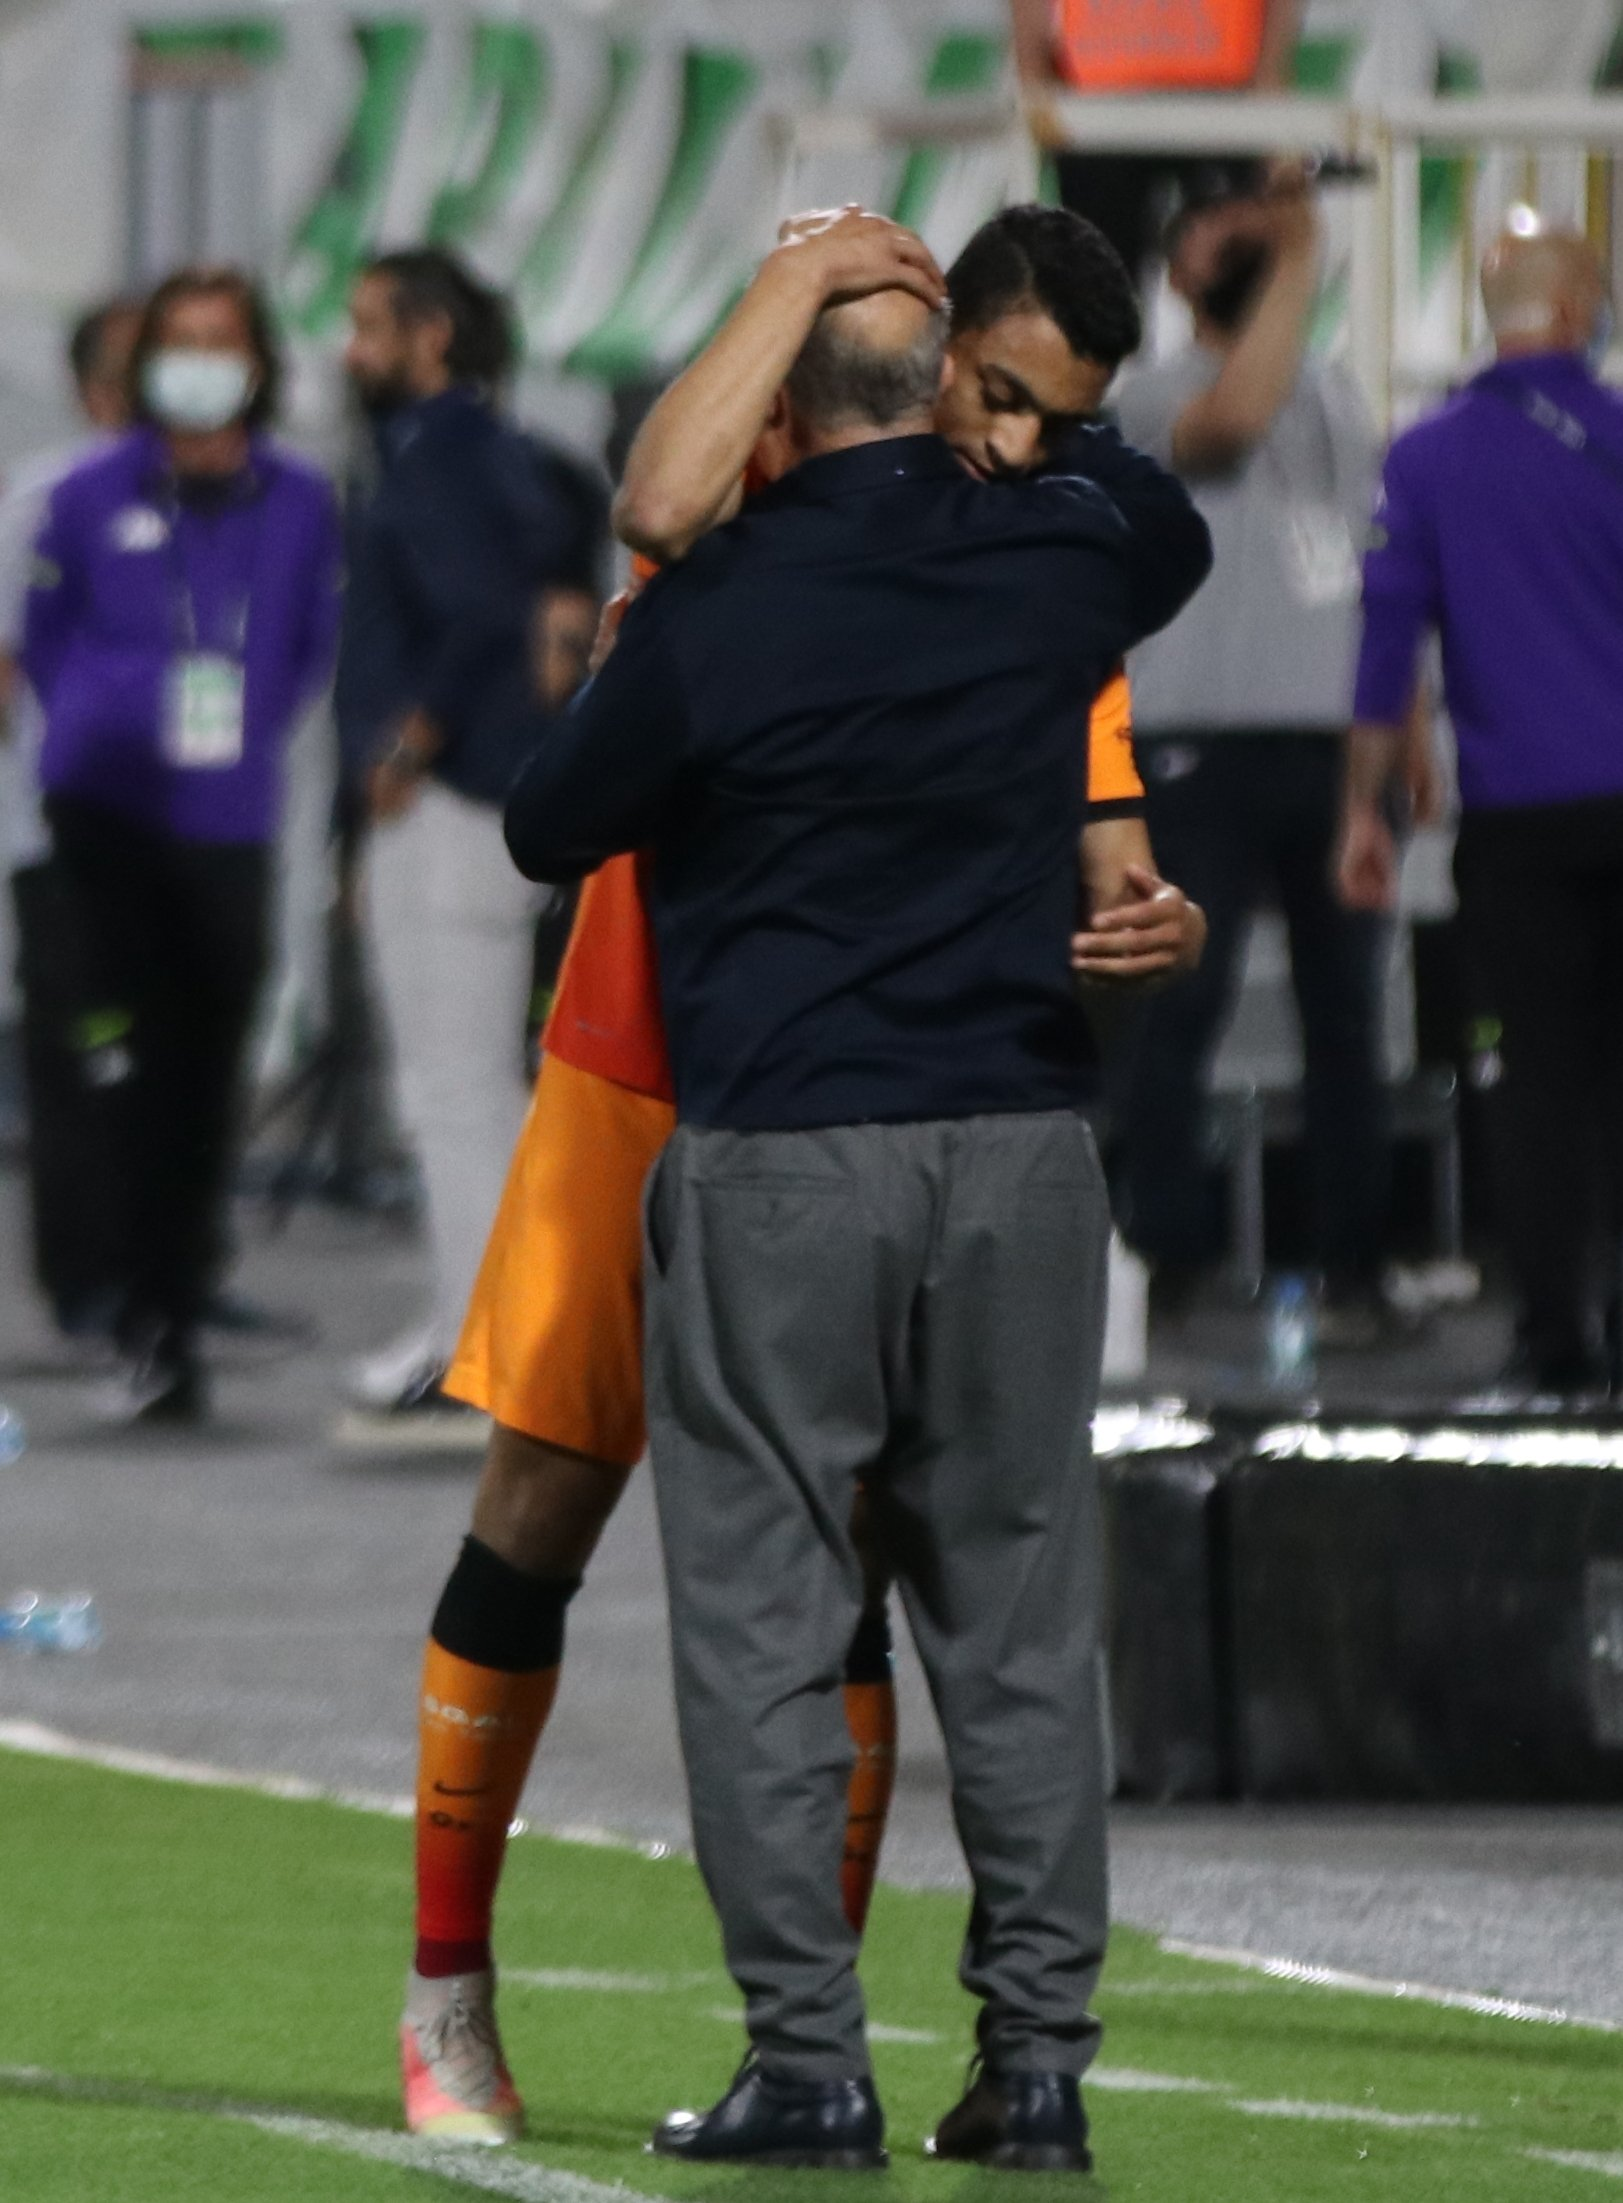 Galatasaray's Egyptian striker Mostafa Mohamed and the club's legendary coach Fatih Terim hug each other after a penalty goal at the Atatürk Stadium in southwestern Denizli province on May 11, 2021 (AA Photo)